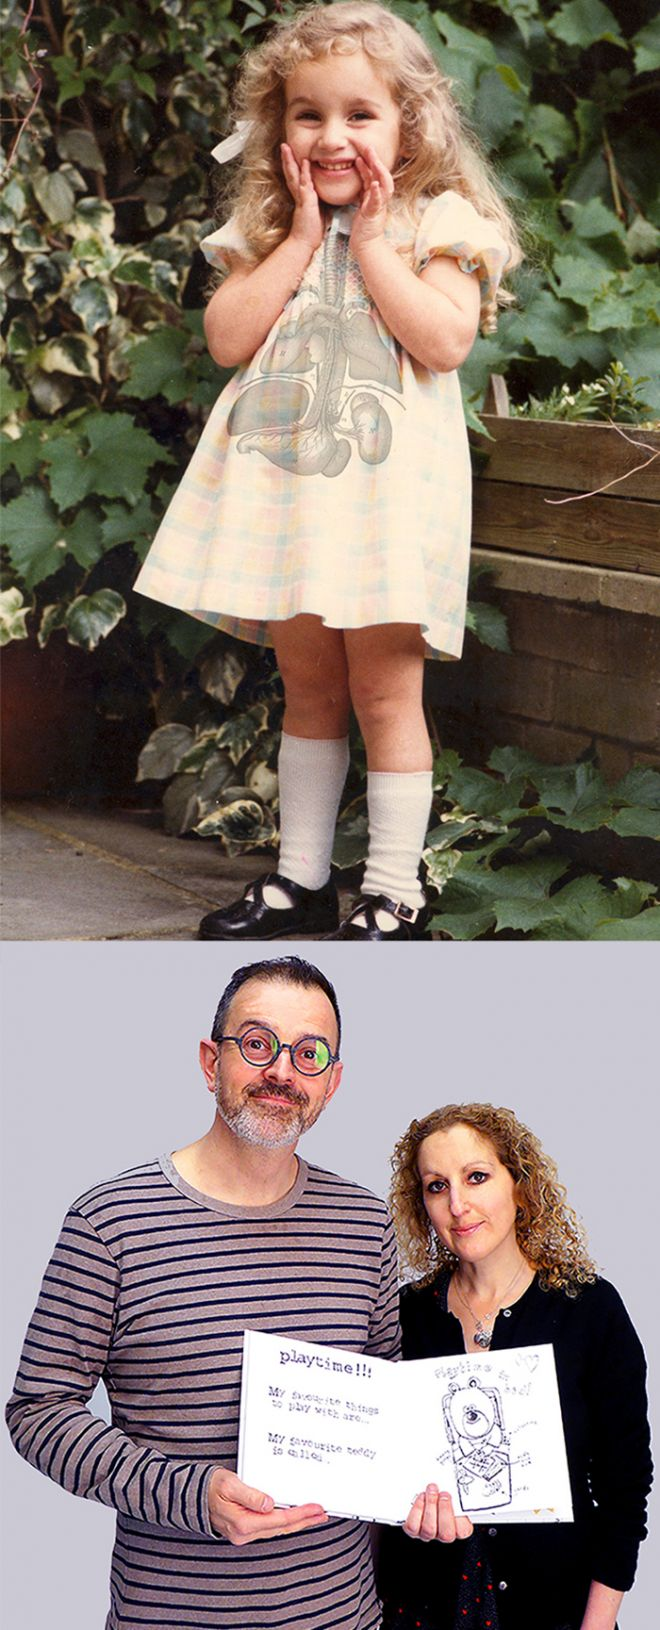 Photo of Georgina Potier as a 7 year old child and a photo of Dr Jake Abrams with Georgina Potier and the My New Kidney book.